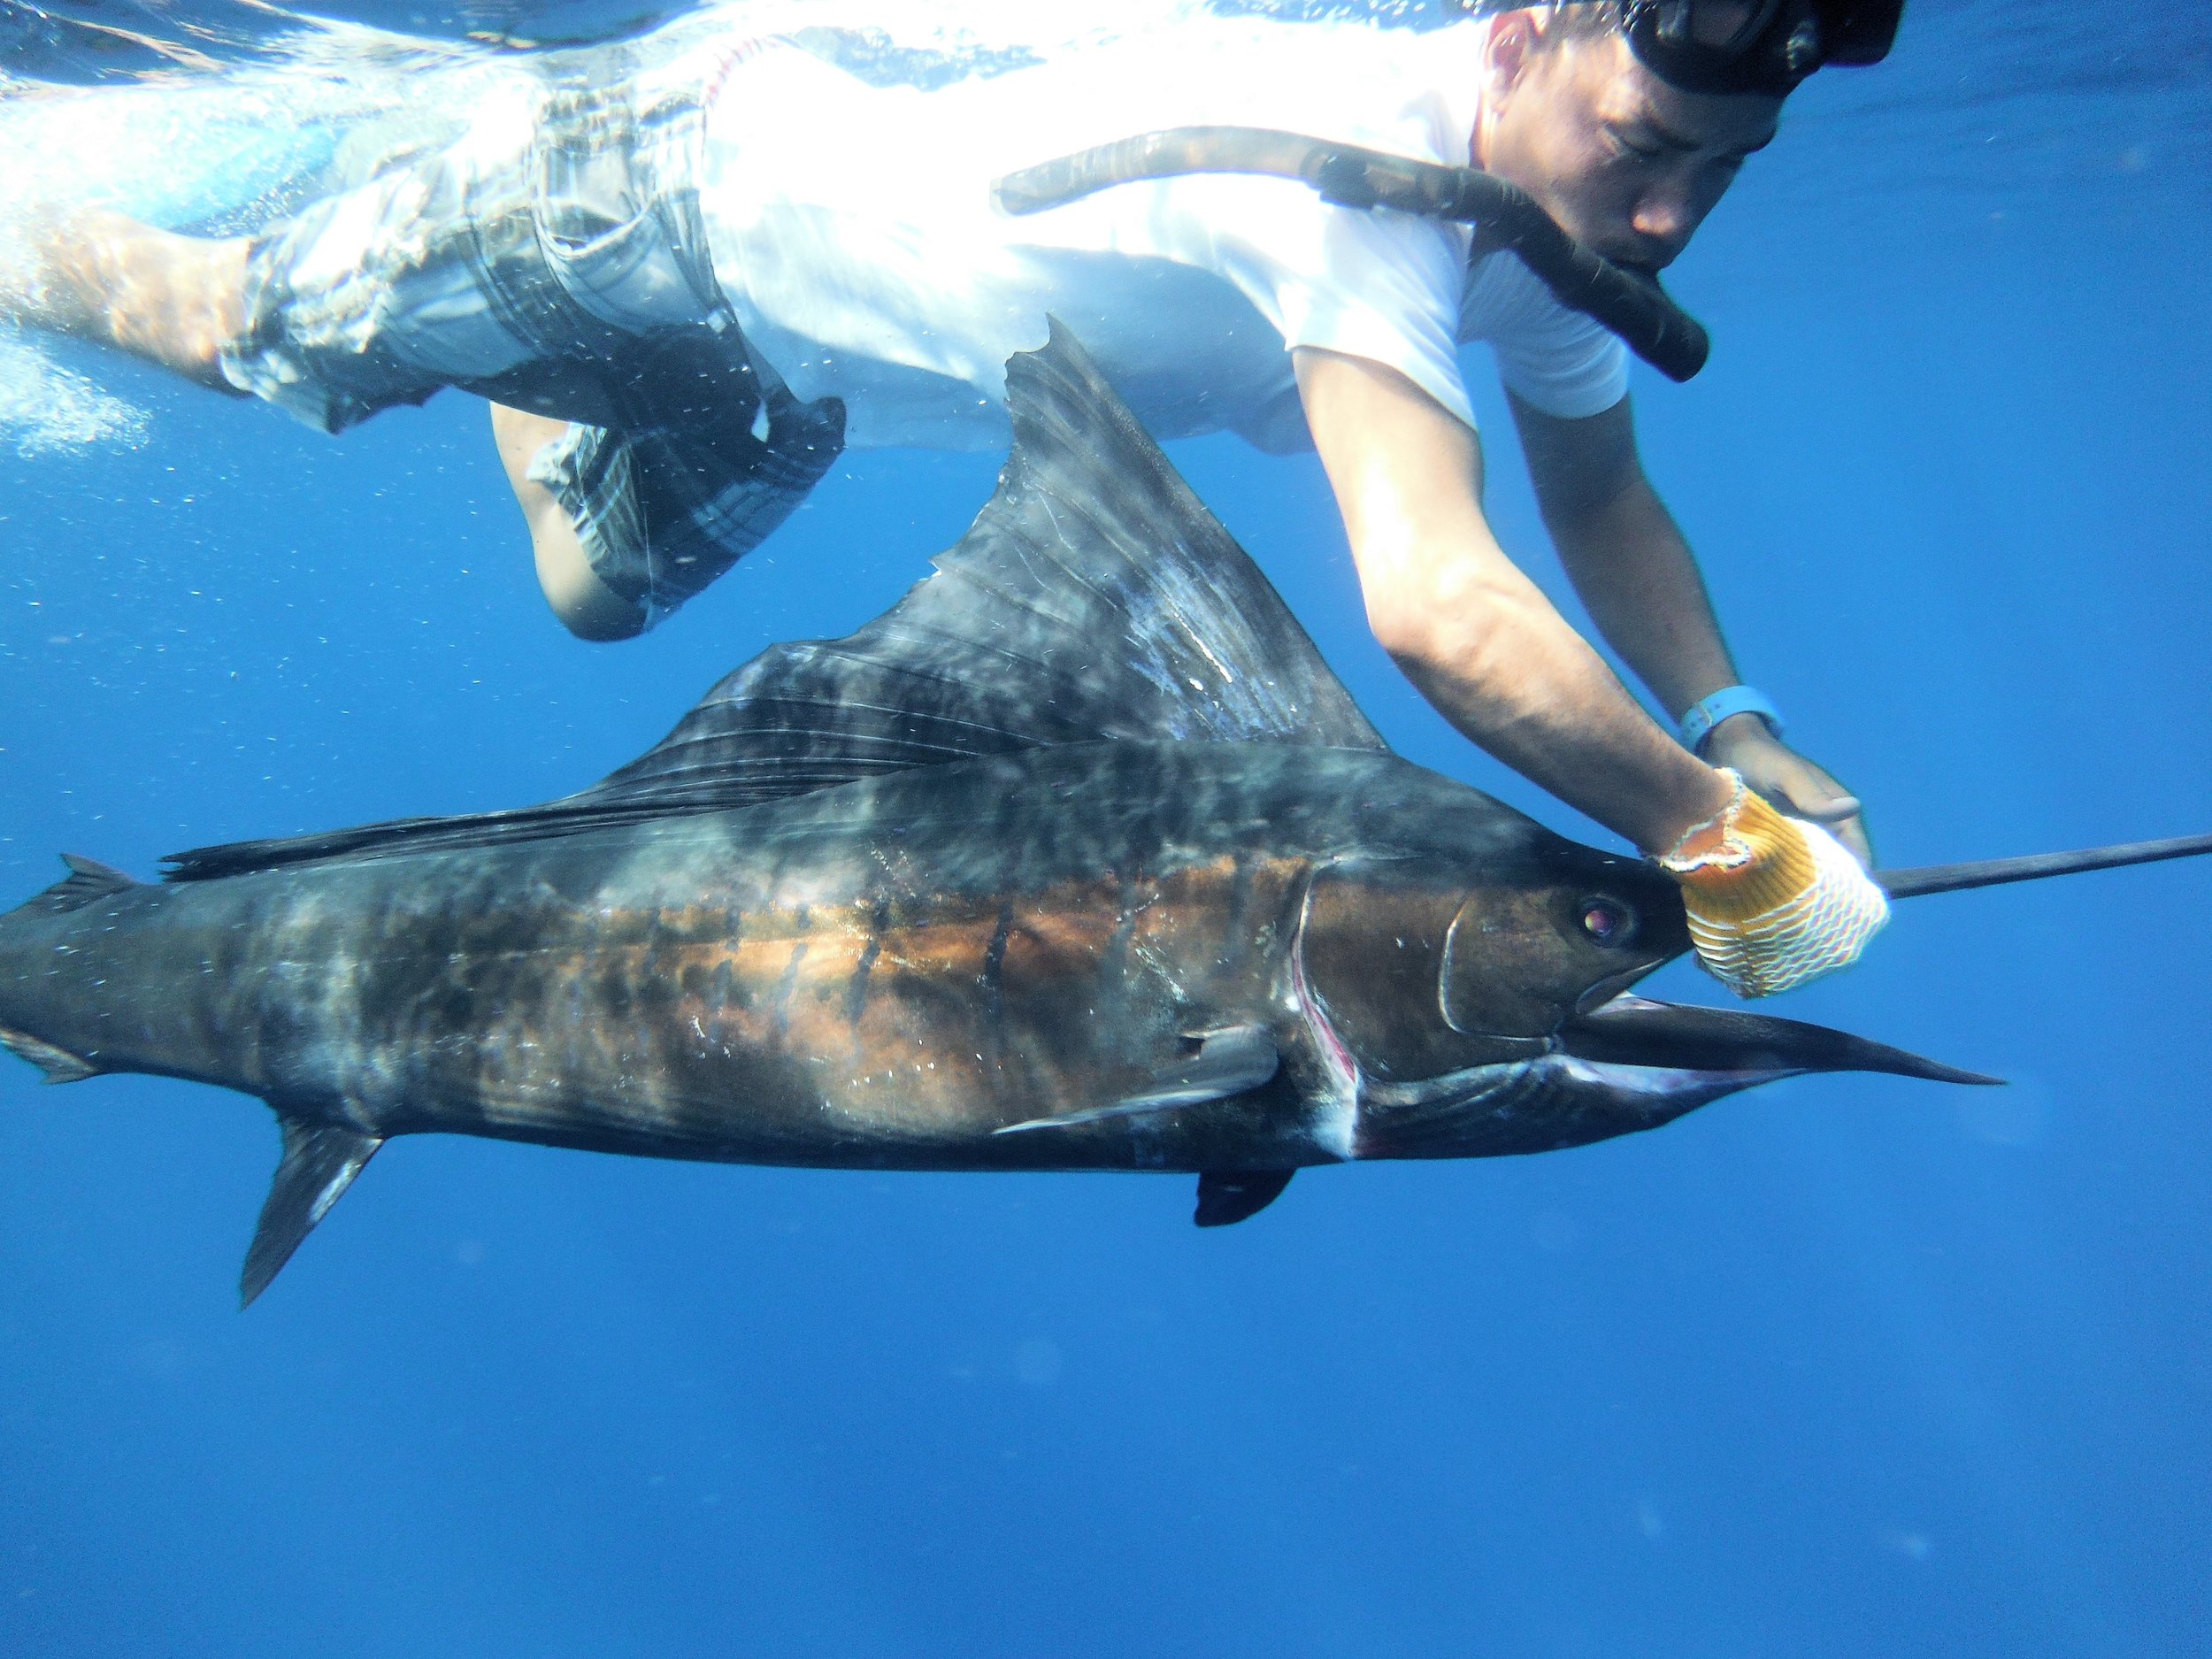 captain Kelvin reviving & releasing sailfish